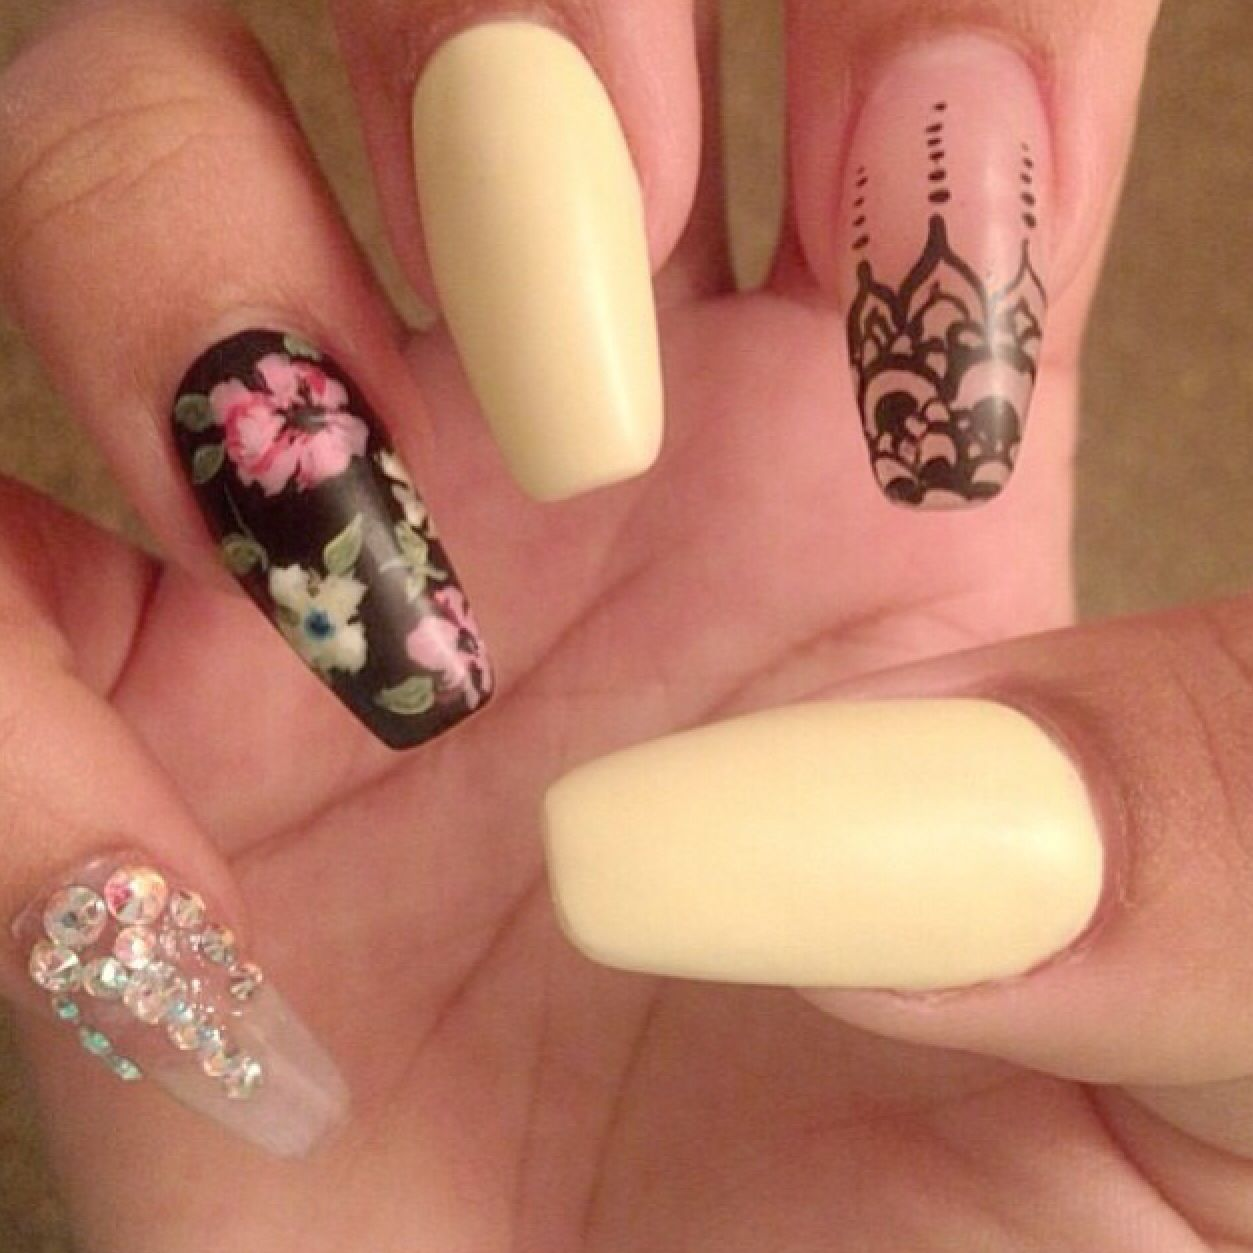 Yellow and floral diamond nails | Yellow and floral diamond nails ...